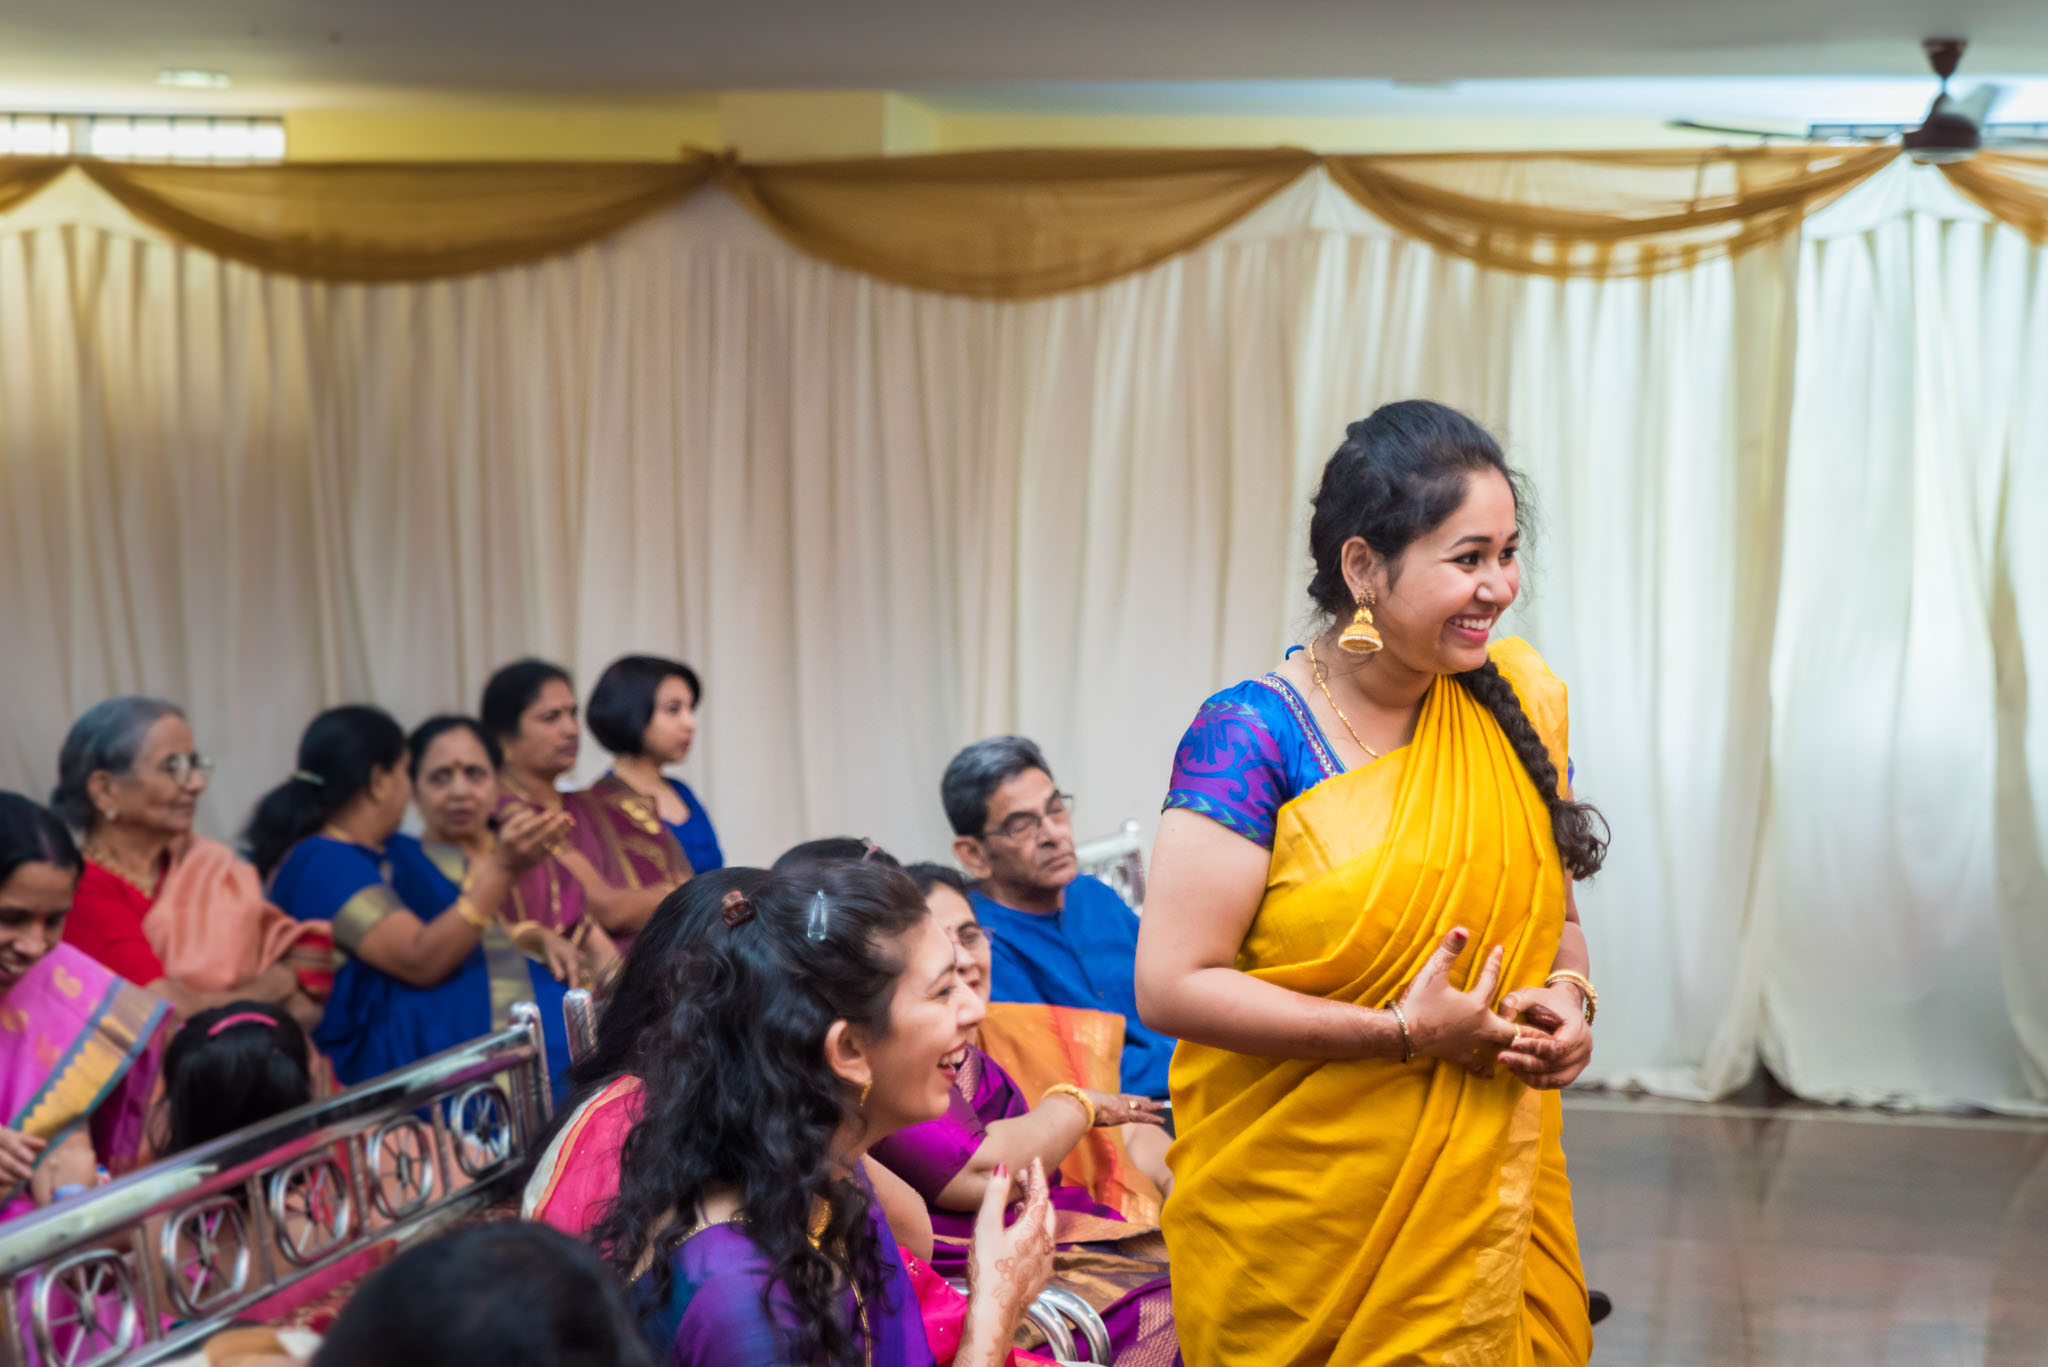 WhatKnot-Candid-Wedding-Photography-Mumbai-Bangalore-78